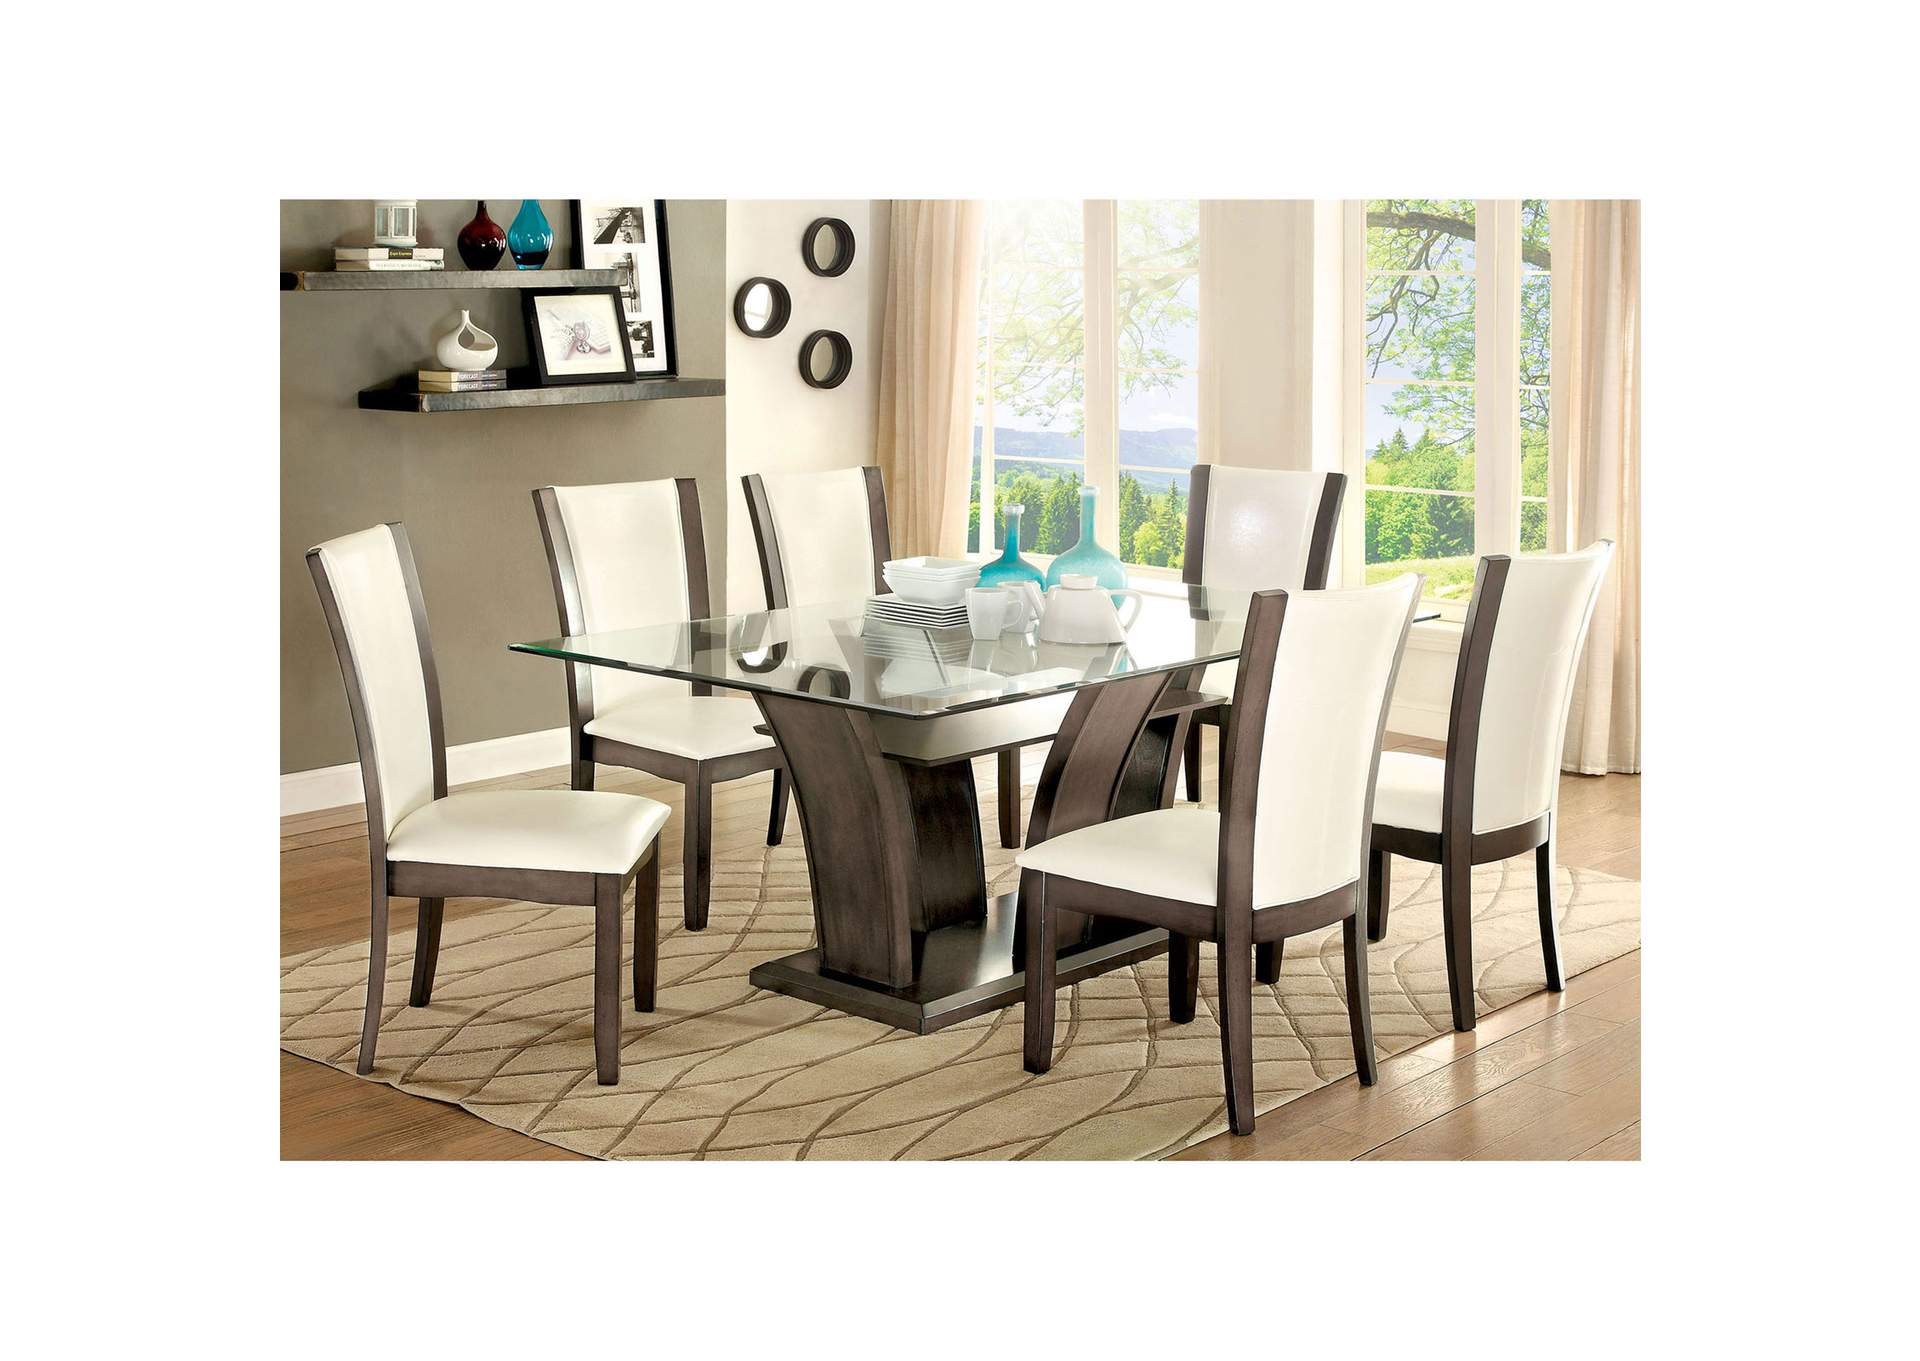 Fashion Home Furniture TX Manhattan Gray GlassTop Dining Table W - Glass top dining table seats 6